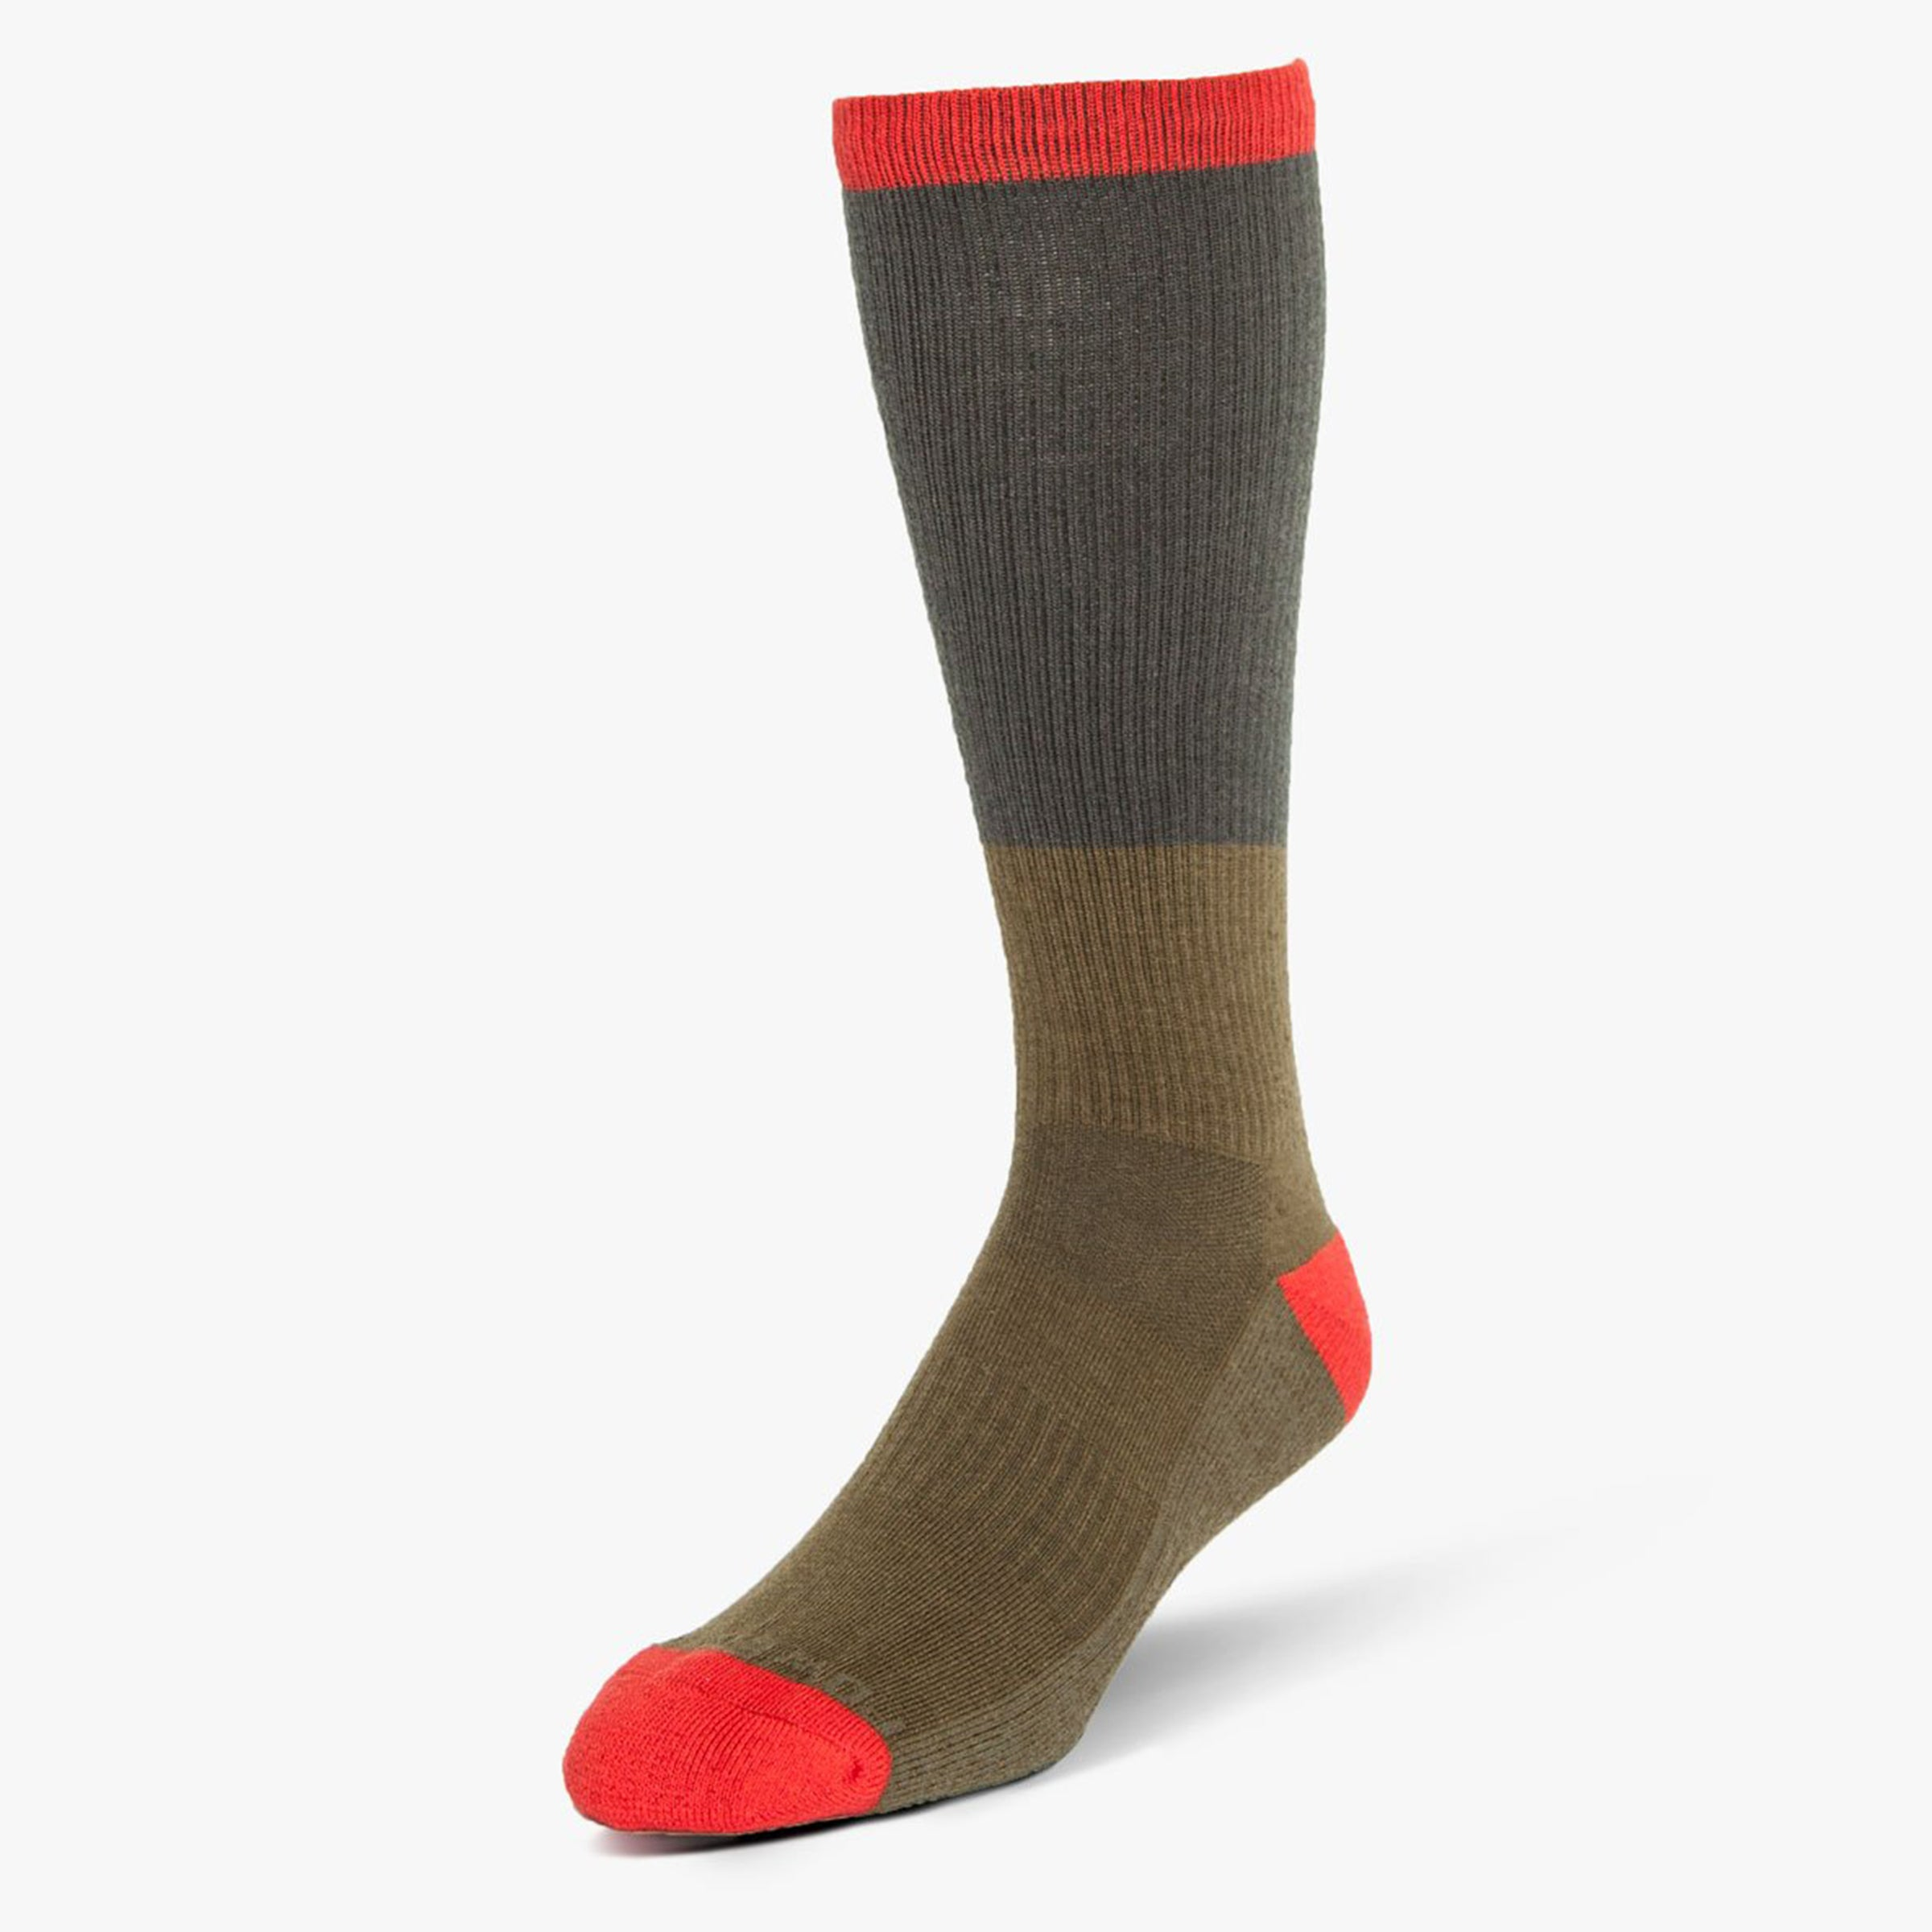 Merino Wool Camp Socks - Mid Weight